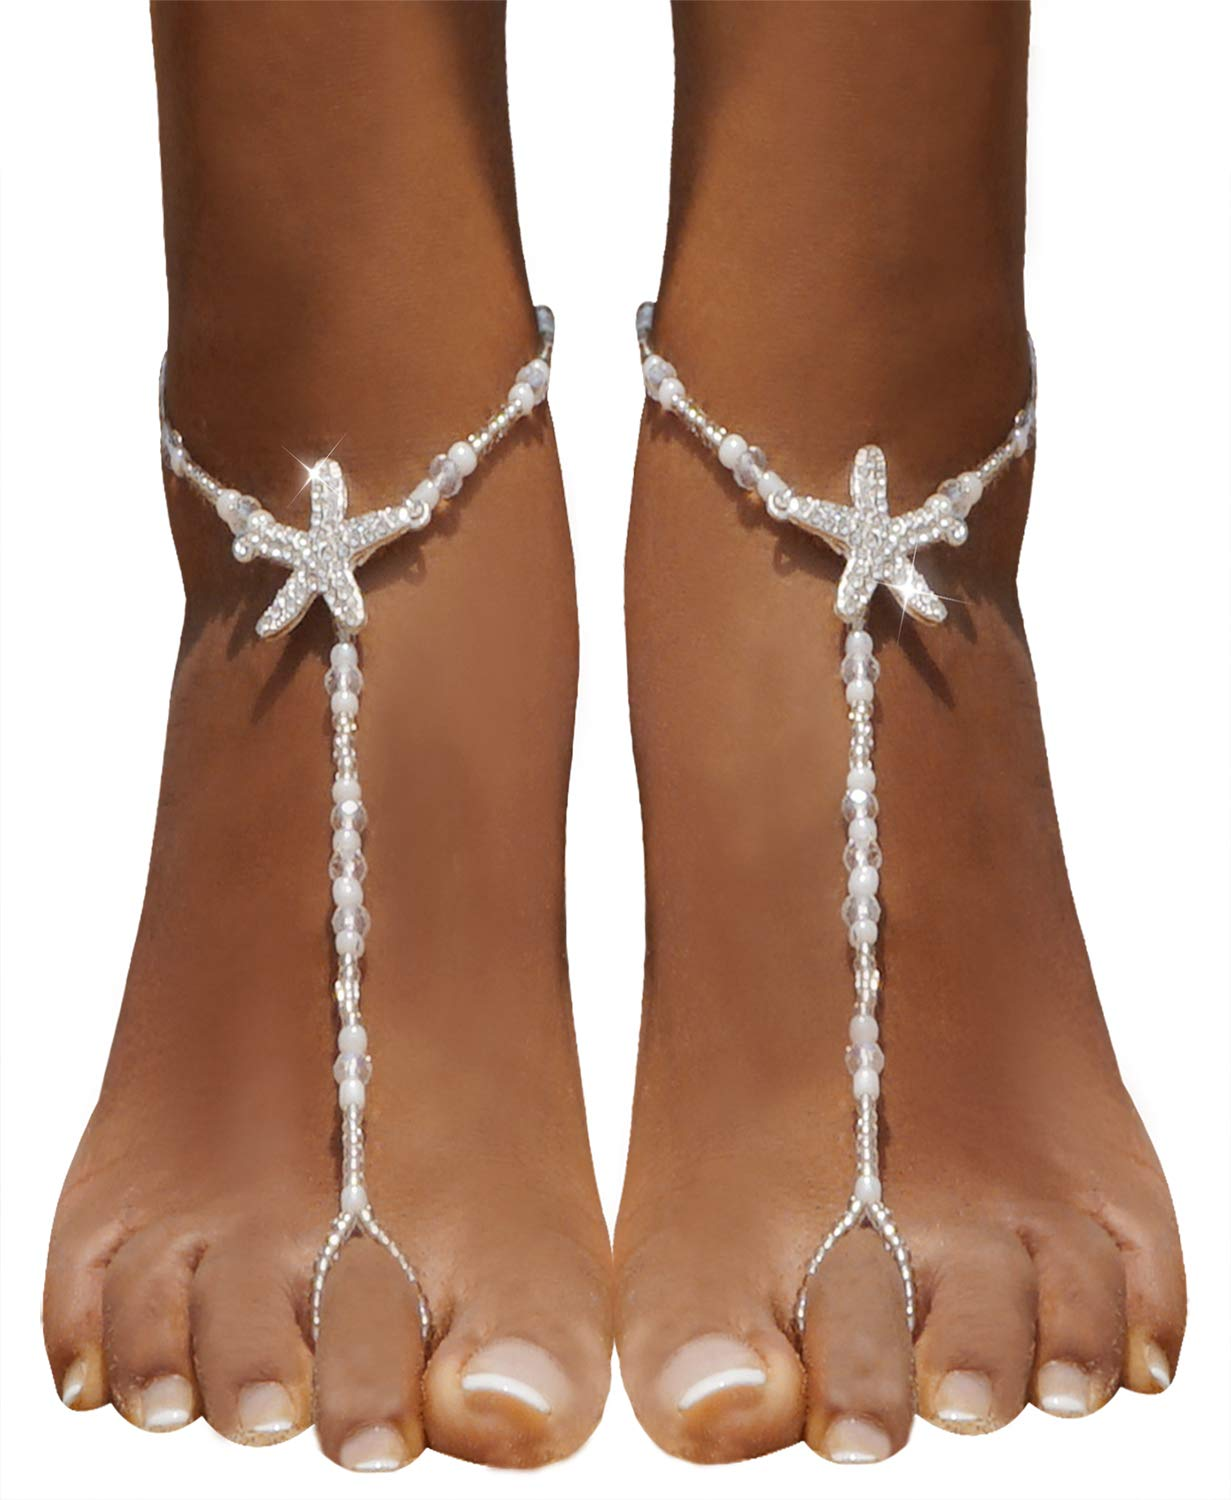 aa0c8e917 Bellady 2Pcs Pearl Ankle Chain Barefoot Sandals with Starfish Beach ...